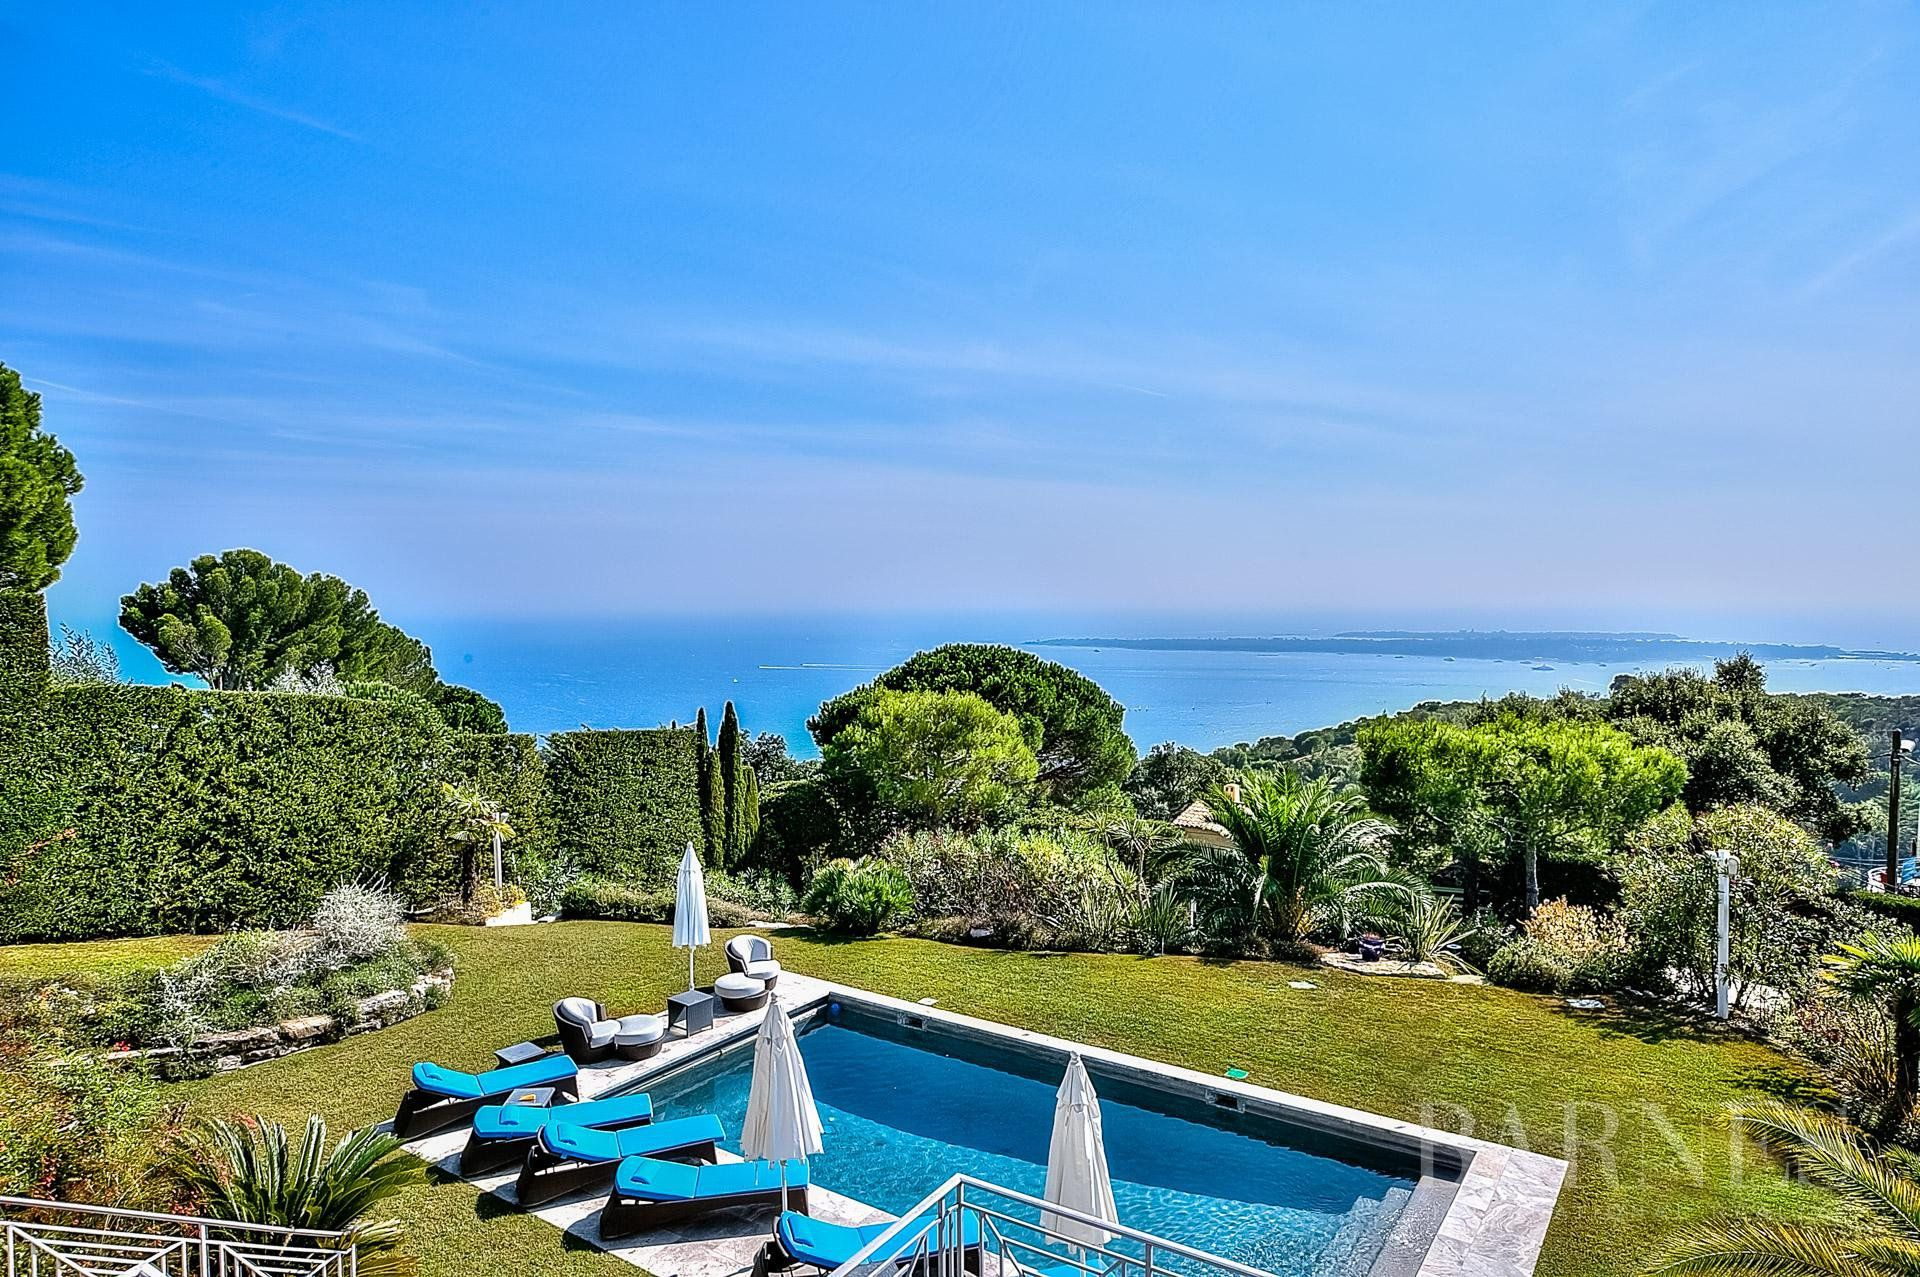 SUPER CANNES - NEO PROVENCAL VILLA - 5 BEDROOMS - POOL - PANORAMIC SEA VIEW